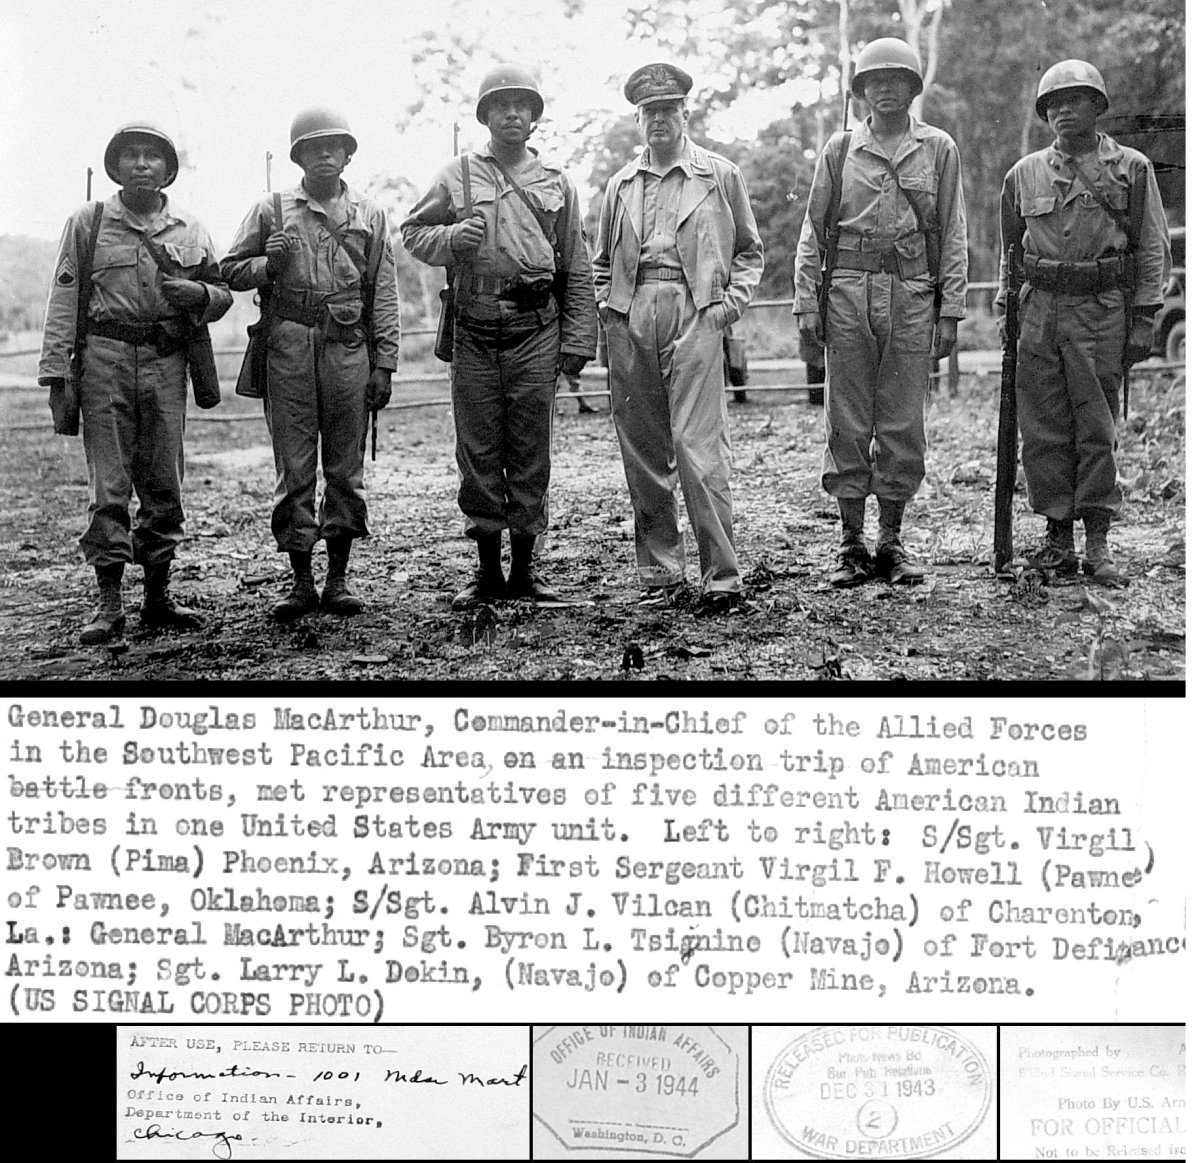 Navajo Code Talkers, included in 33 different tribes (including Kentucky Shawnee) that sent soldiers to help the Allies in WWI and WWII. Most of the soldiers had been recognized by the federal government by late 2013.